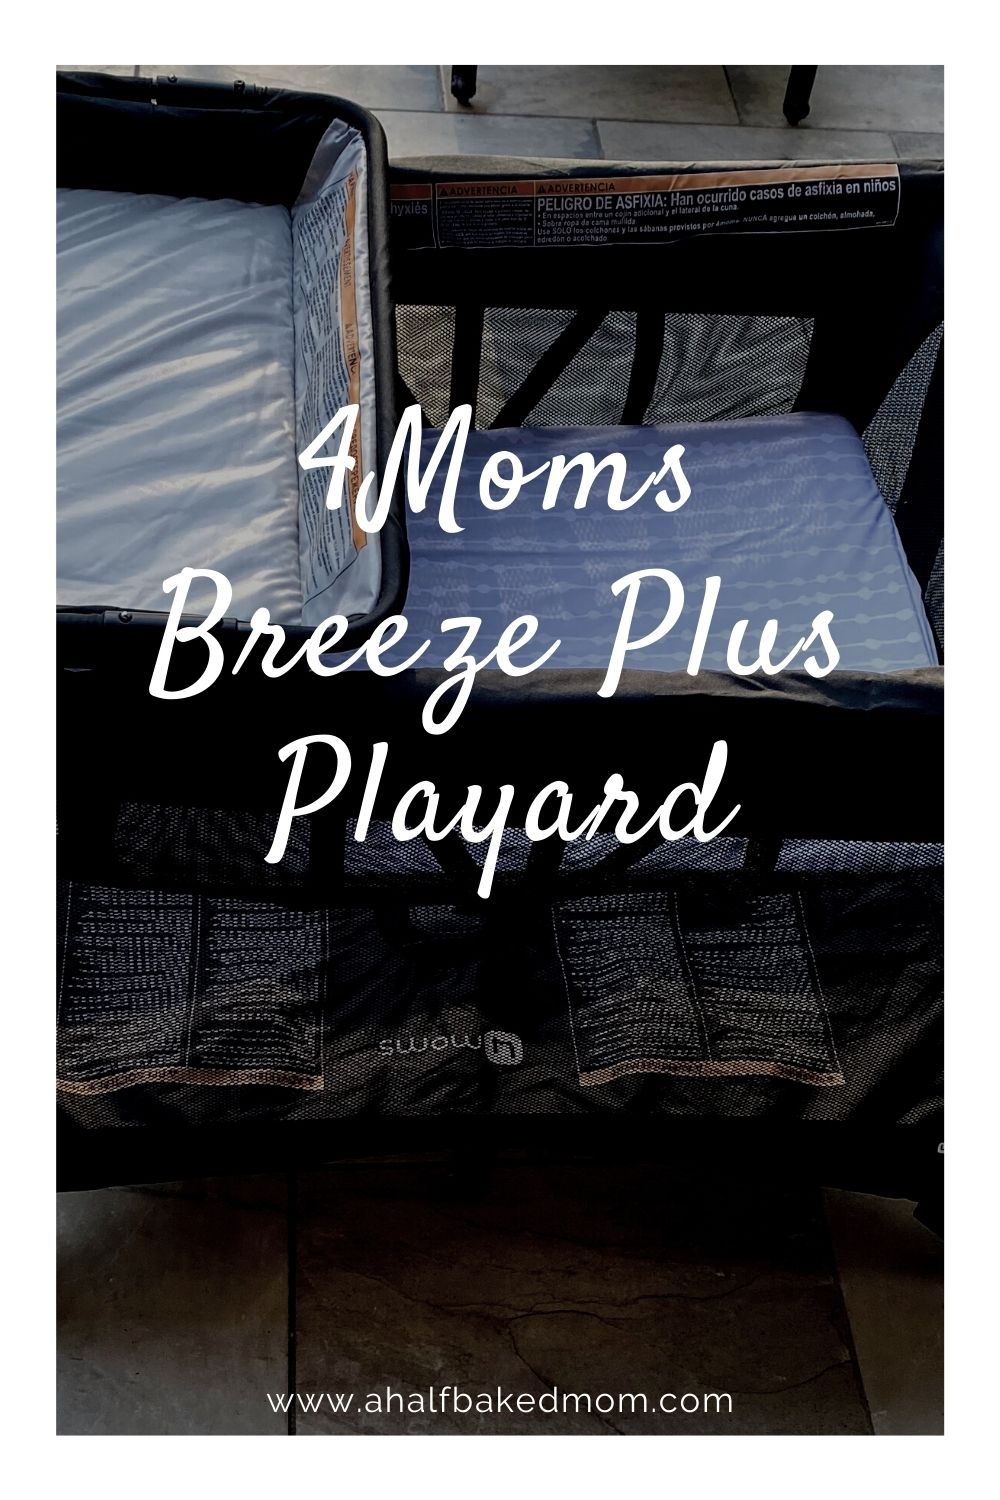 4Moms Breeze Plus Playard